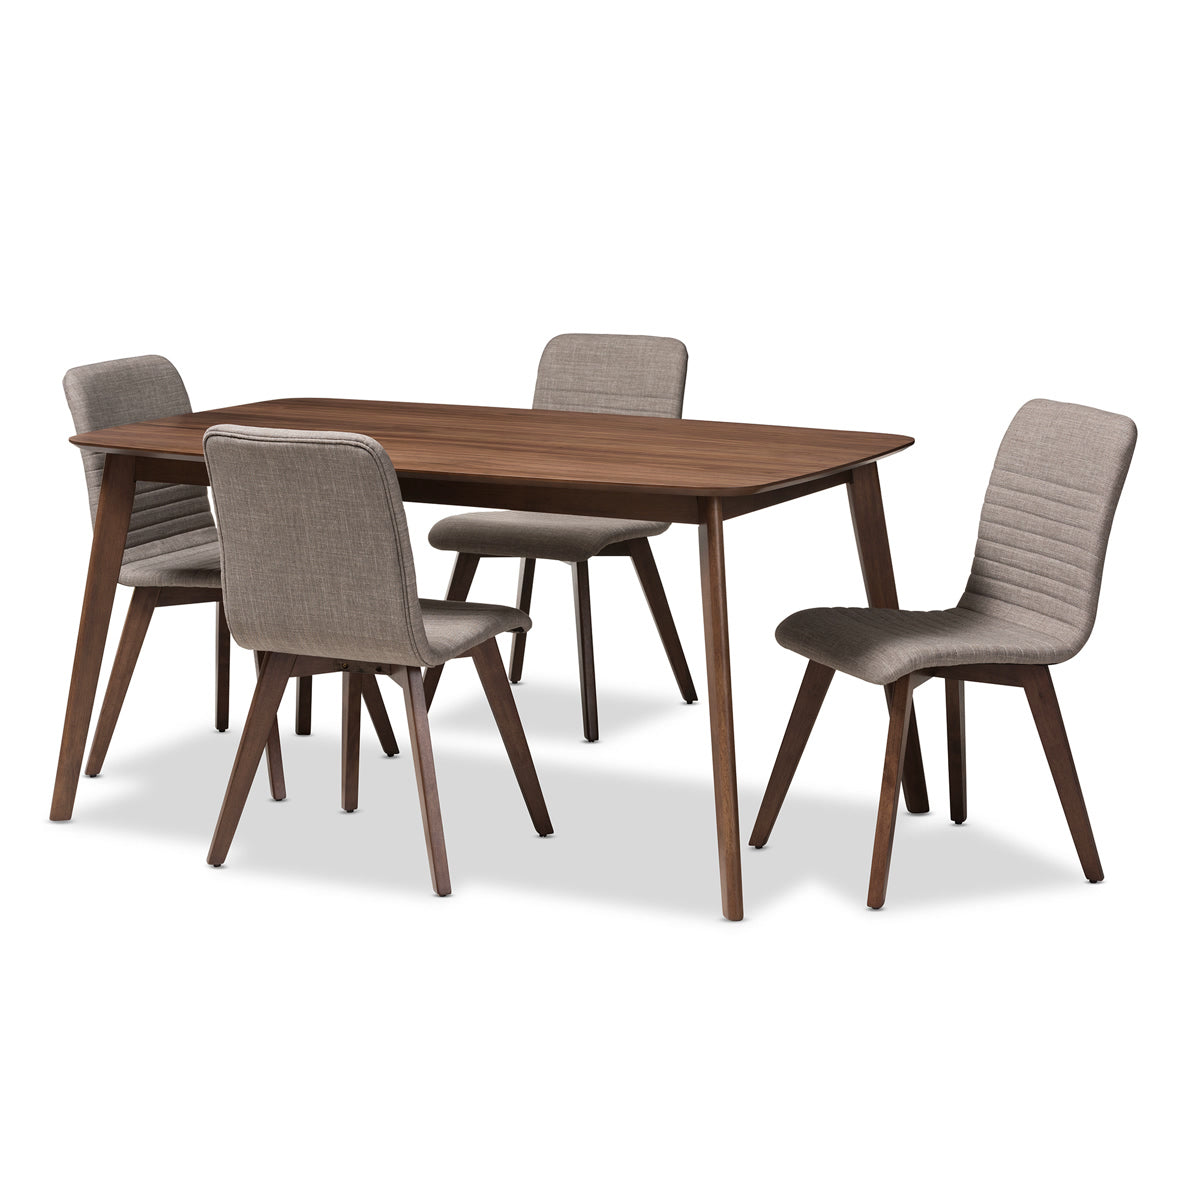 Baxton Studio Sugar Mid-Century Modern Light Grey Fabric Upholstered Walnut Wood Finished 5-Piece Dining Set Baxton Studio-0-Minimal And Modern - 1